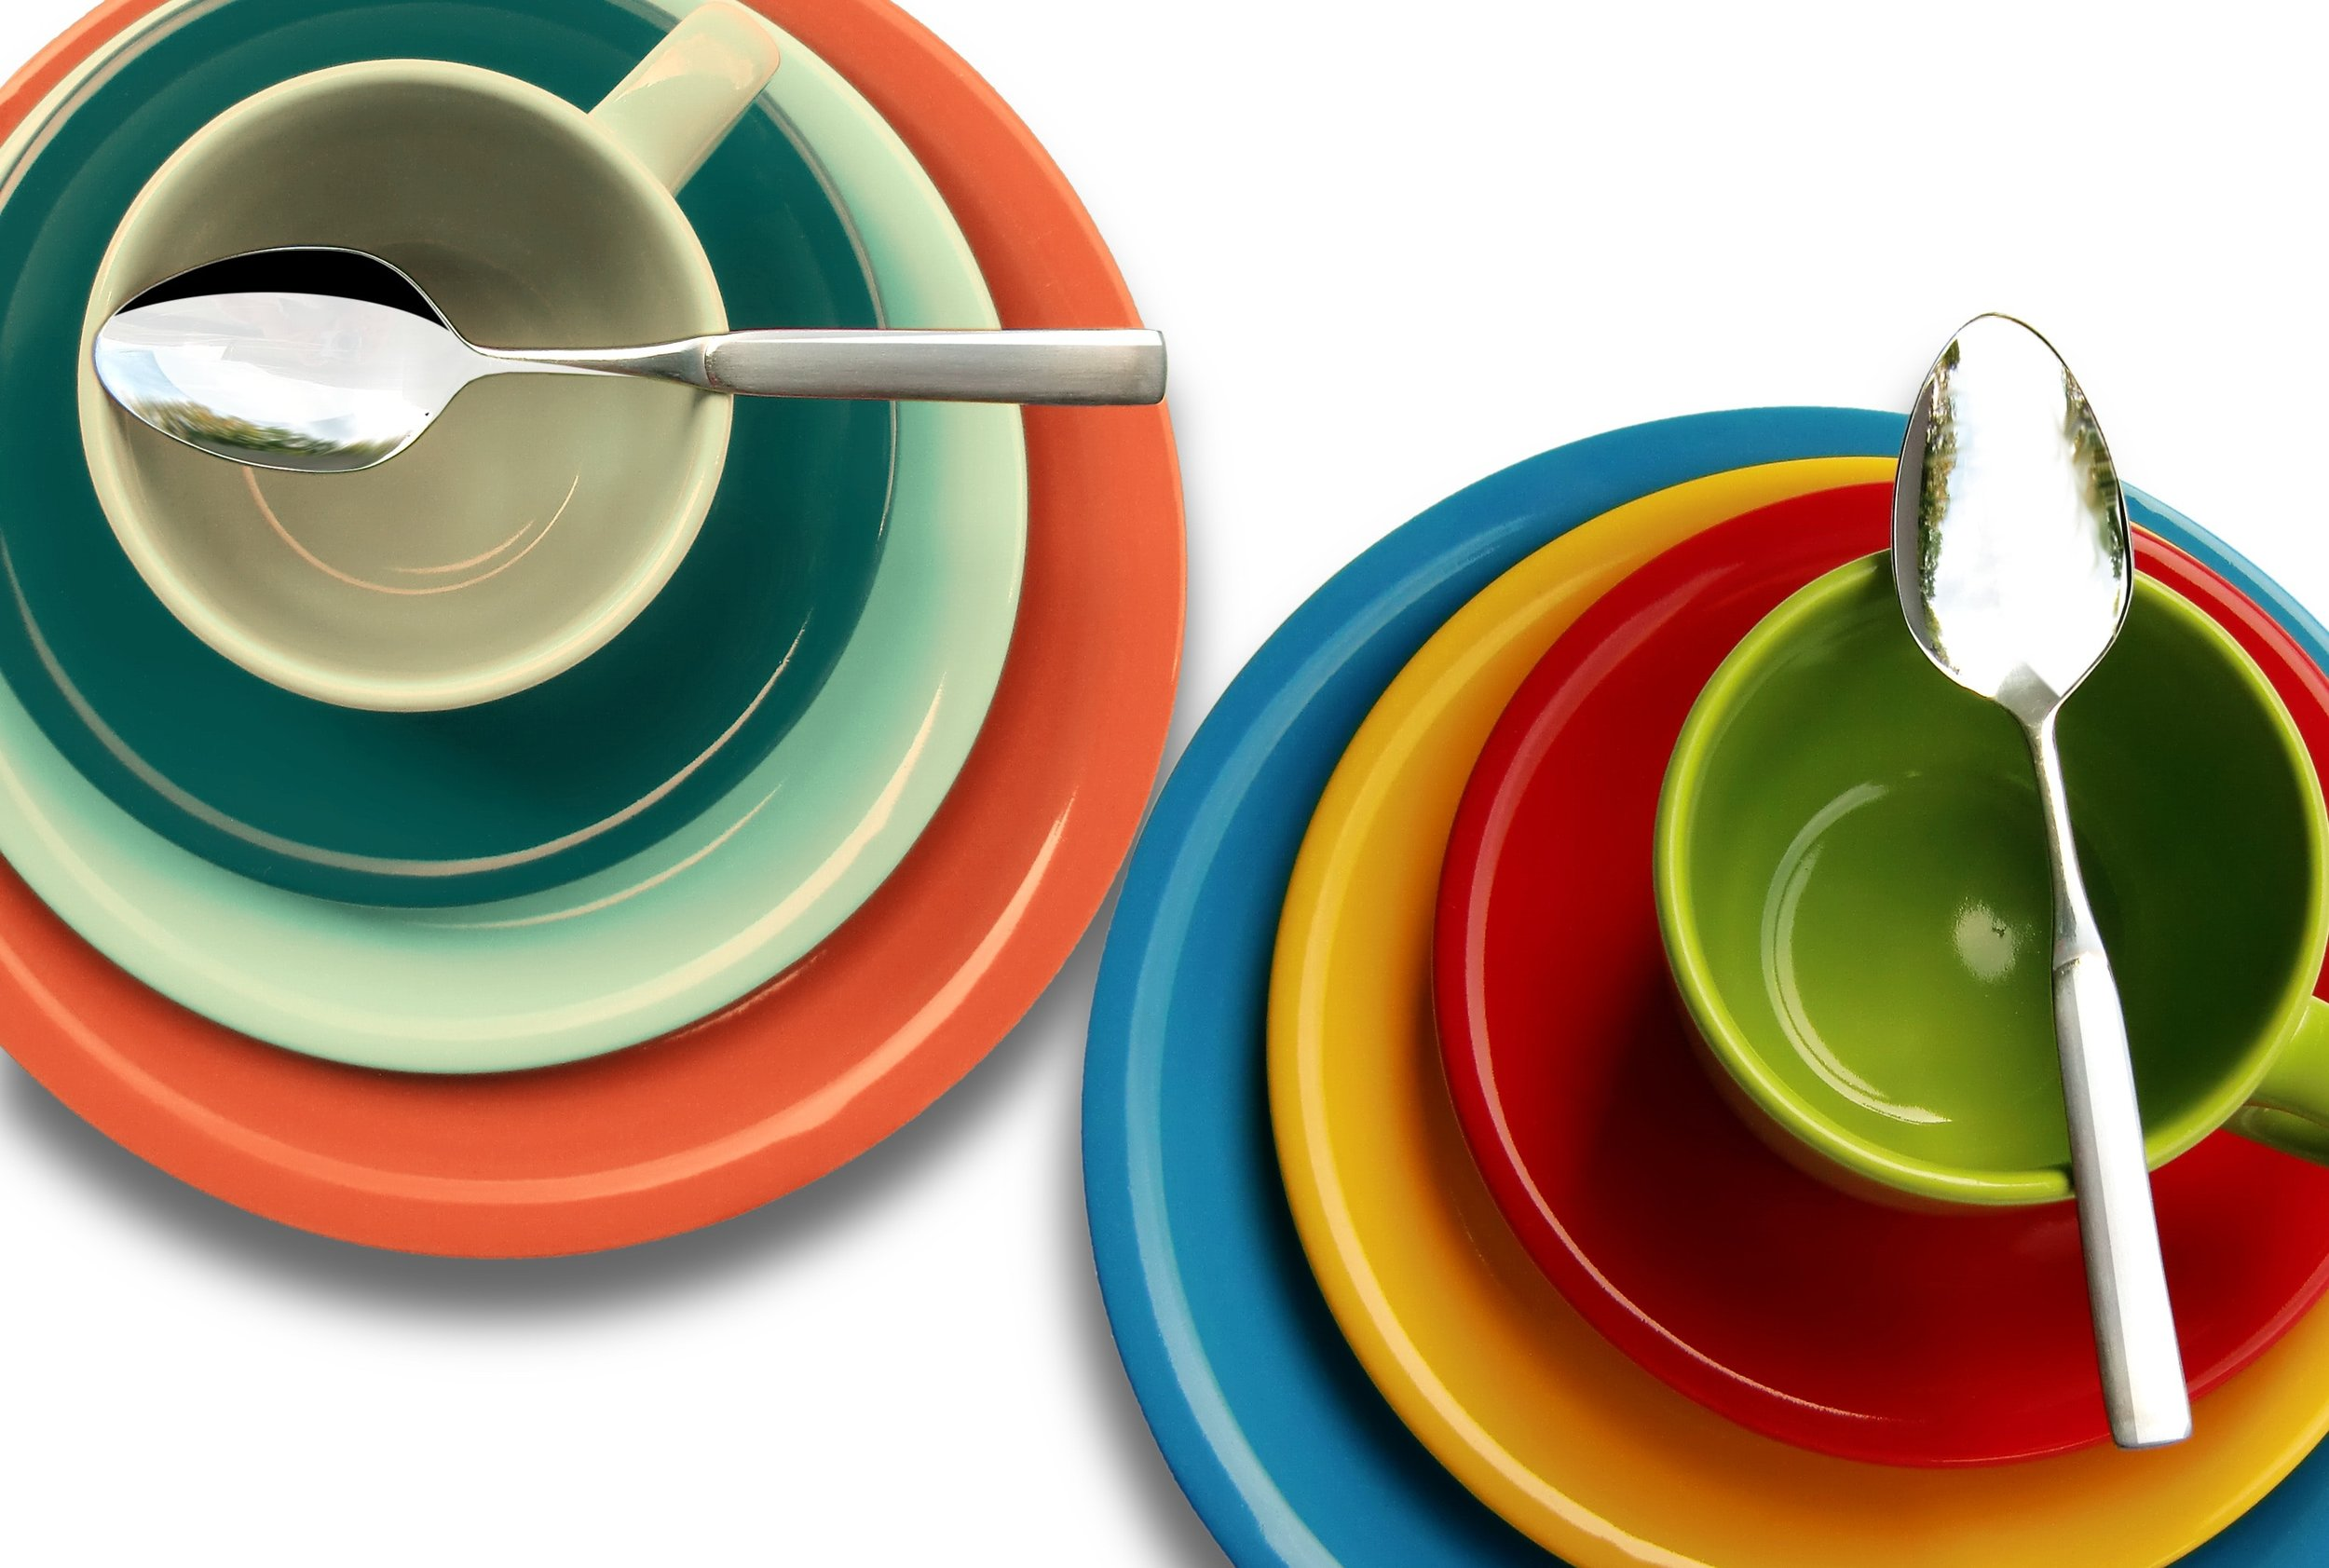 bowls-colorful-colourful-46199.jpg